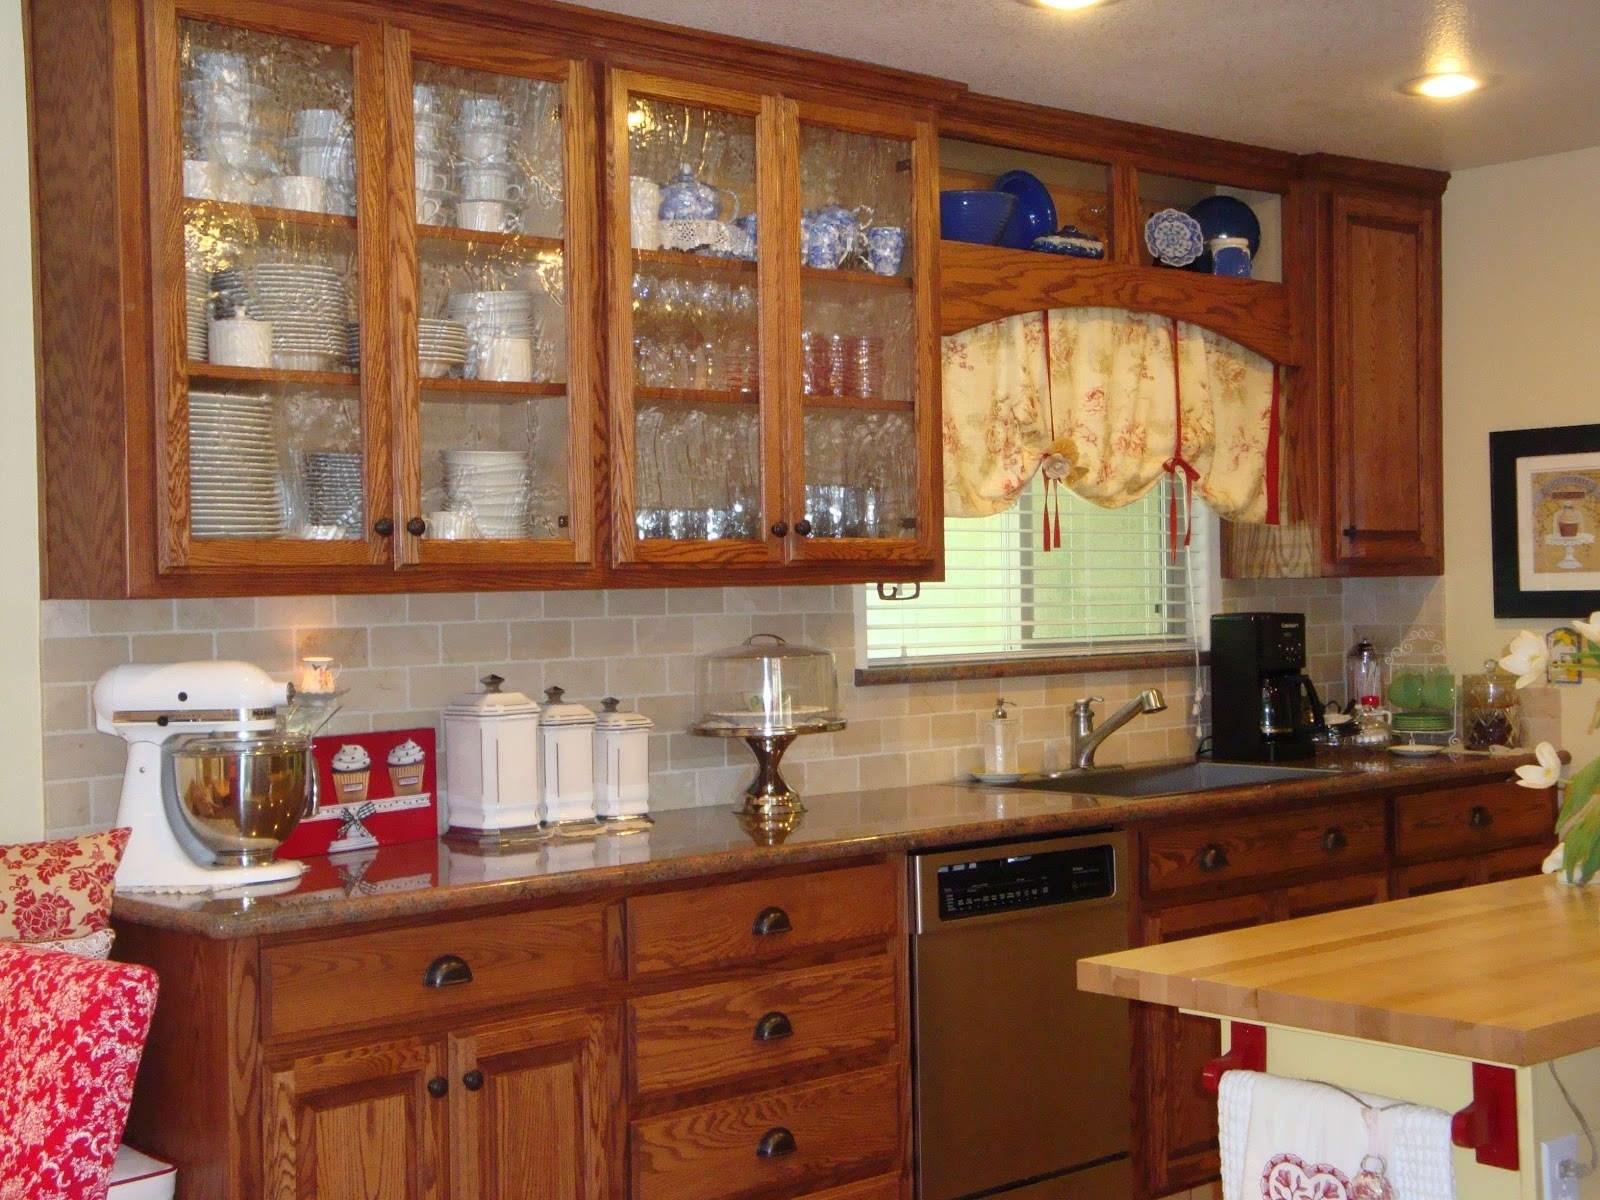 Kitchen Cabinets With Glass Doors On Both Sides